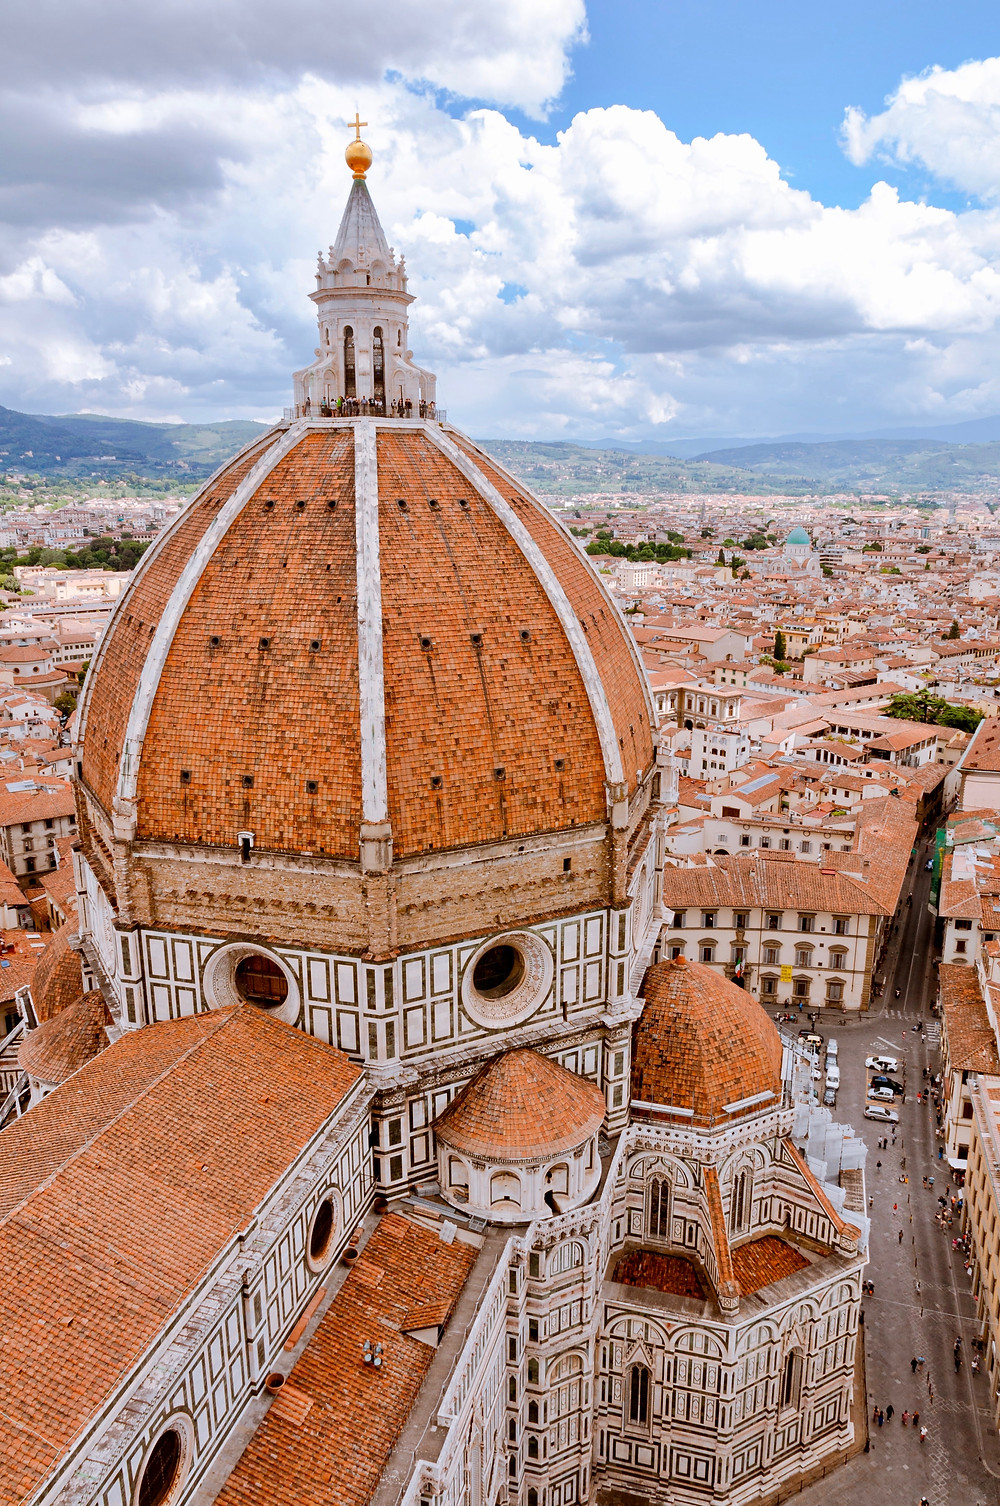 the iconic Brunelleschi dome of Florence cathedral